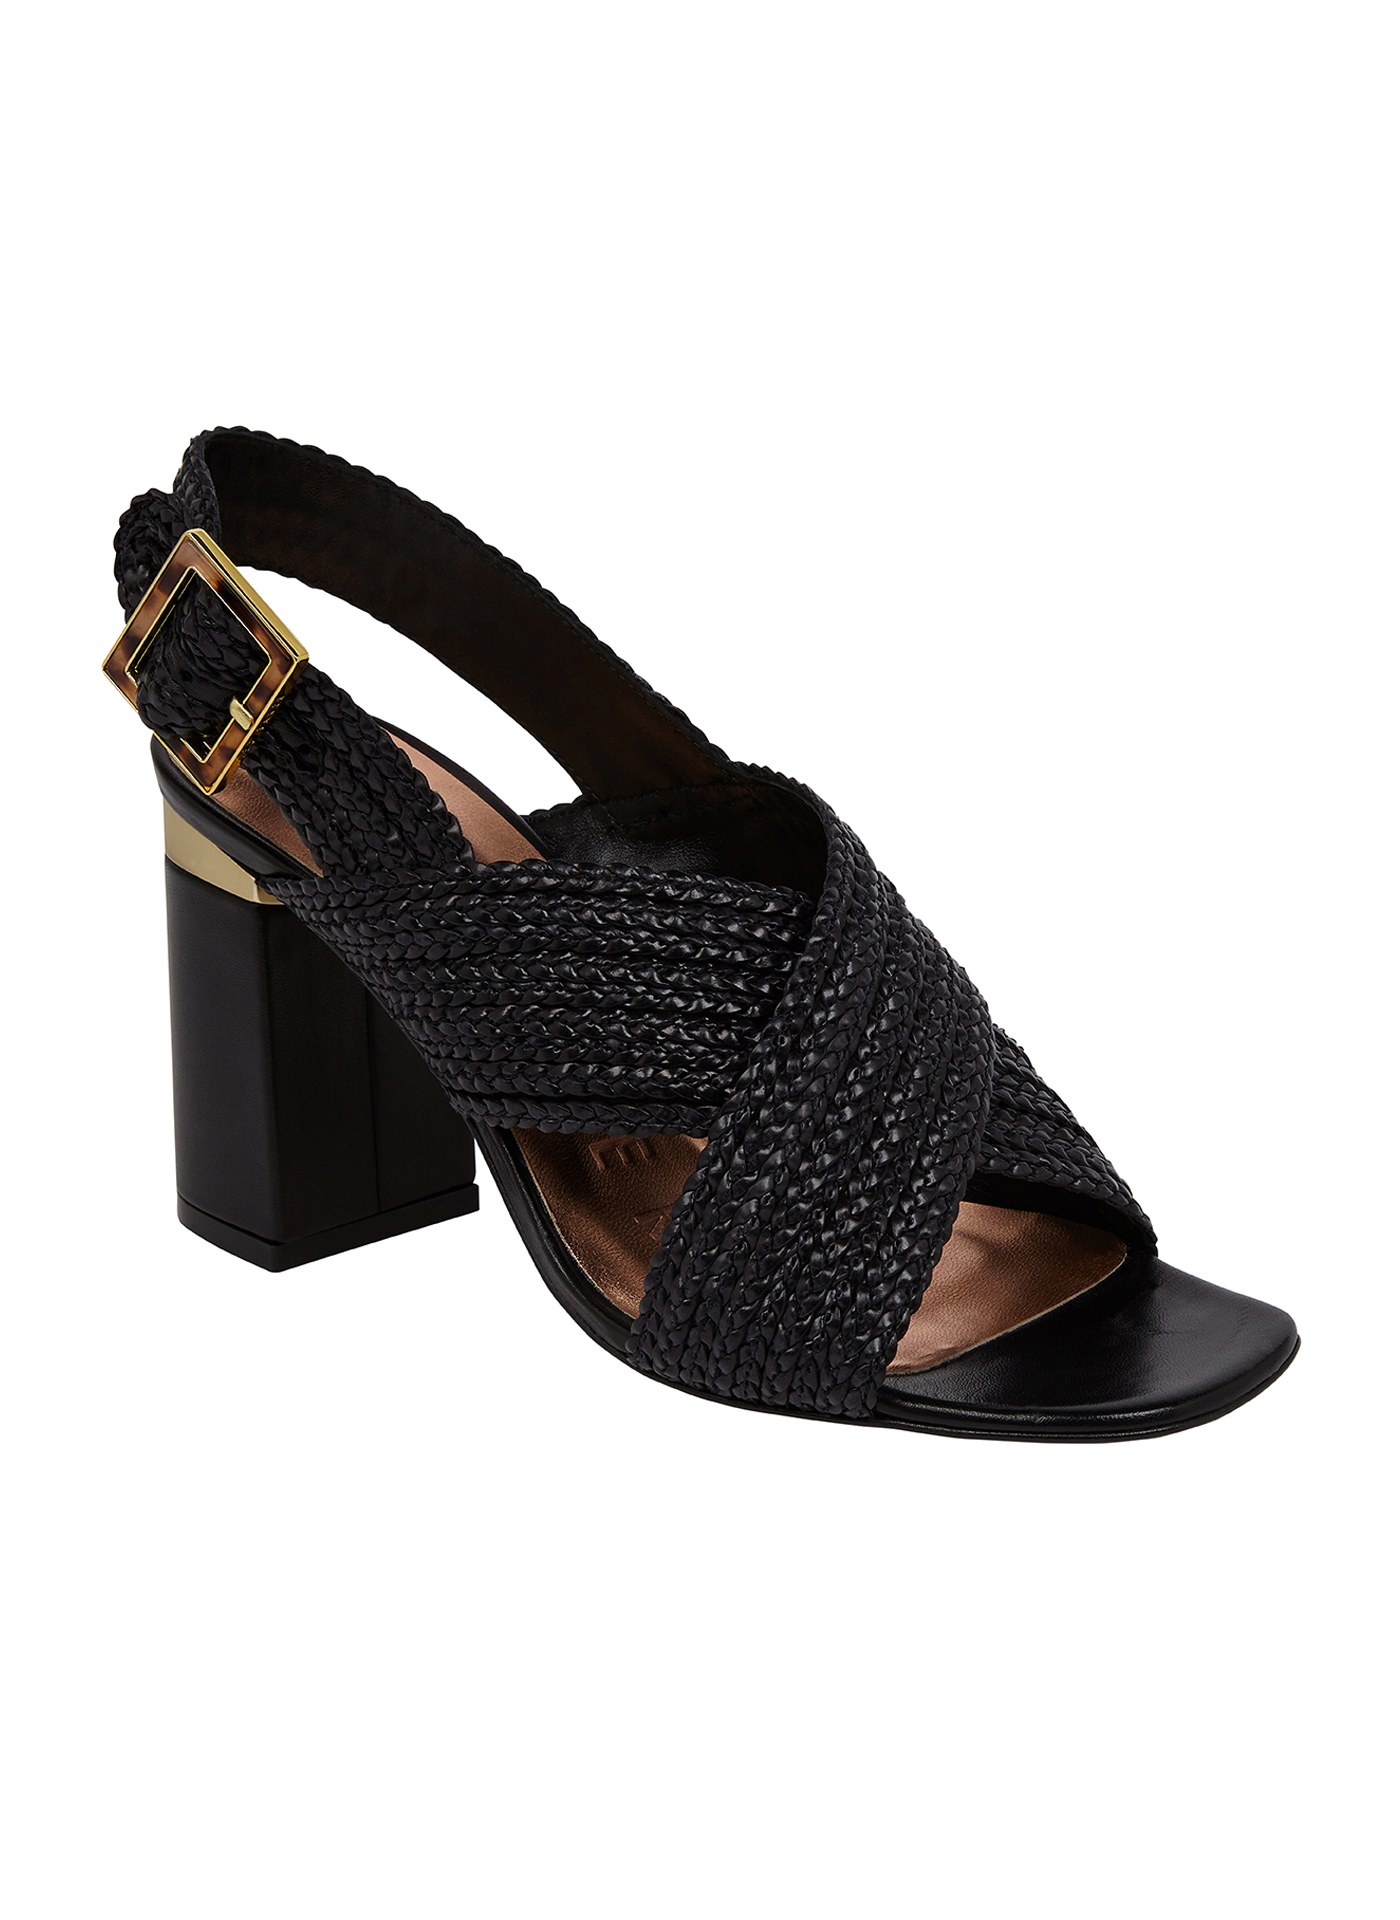 Black Ted Baker women's shoe with a gold buckle